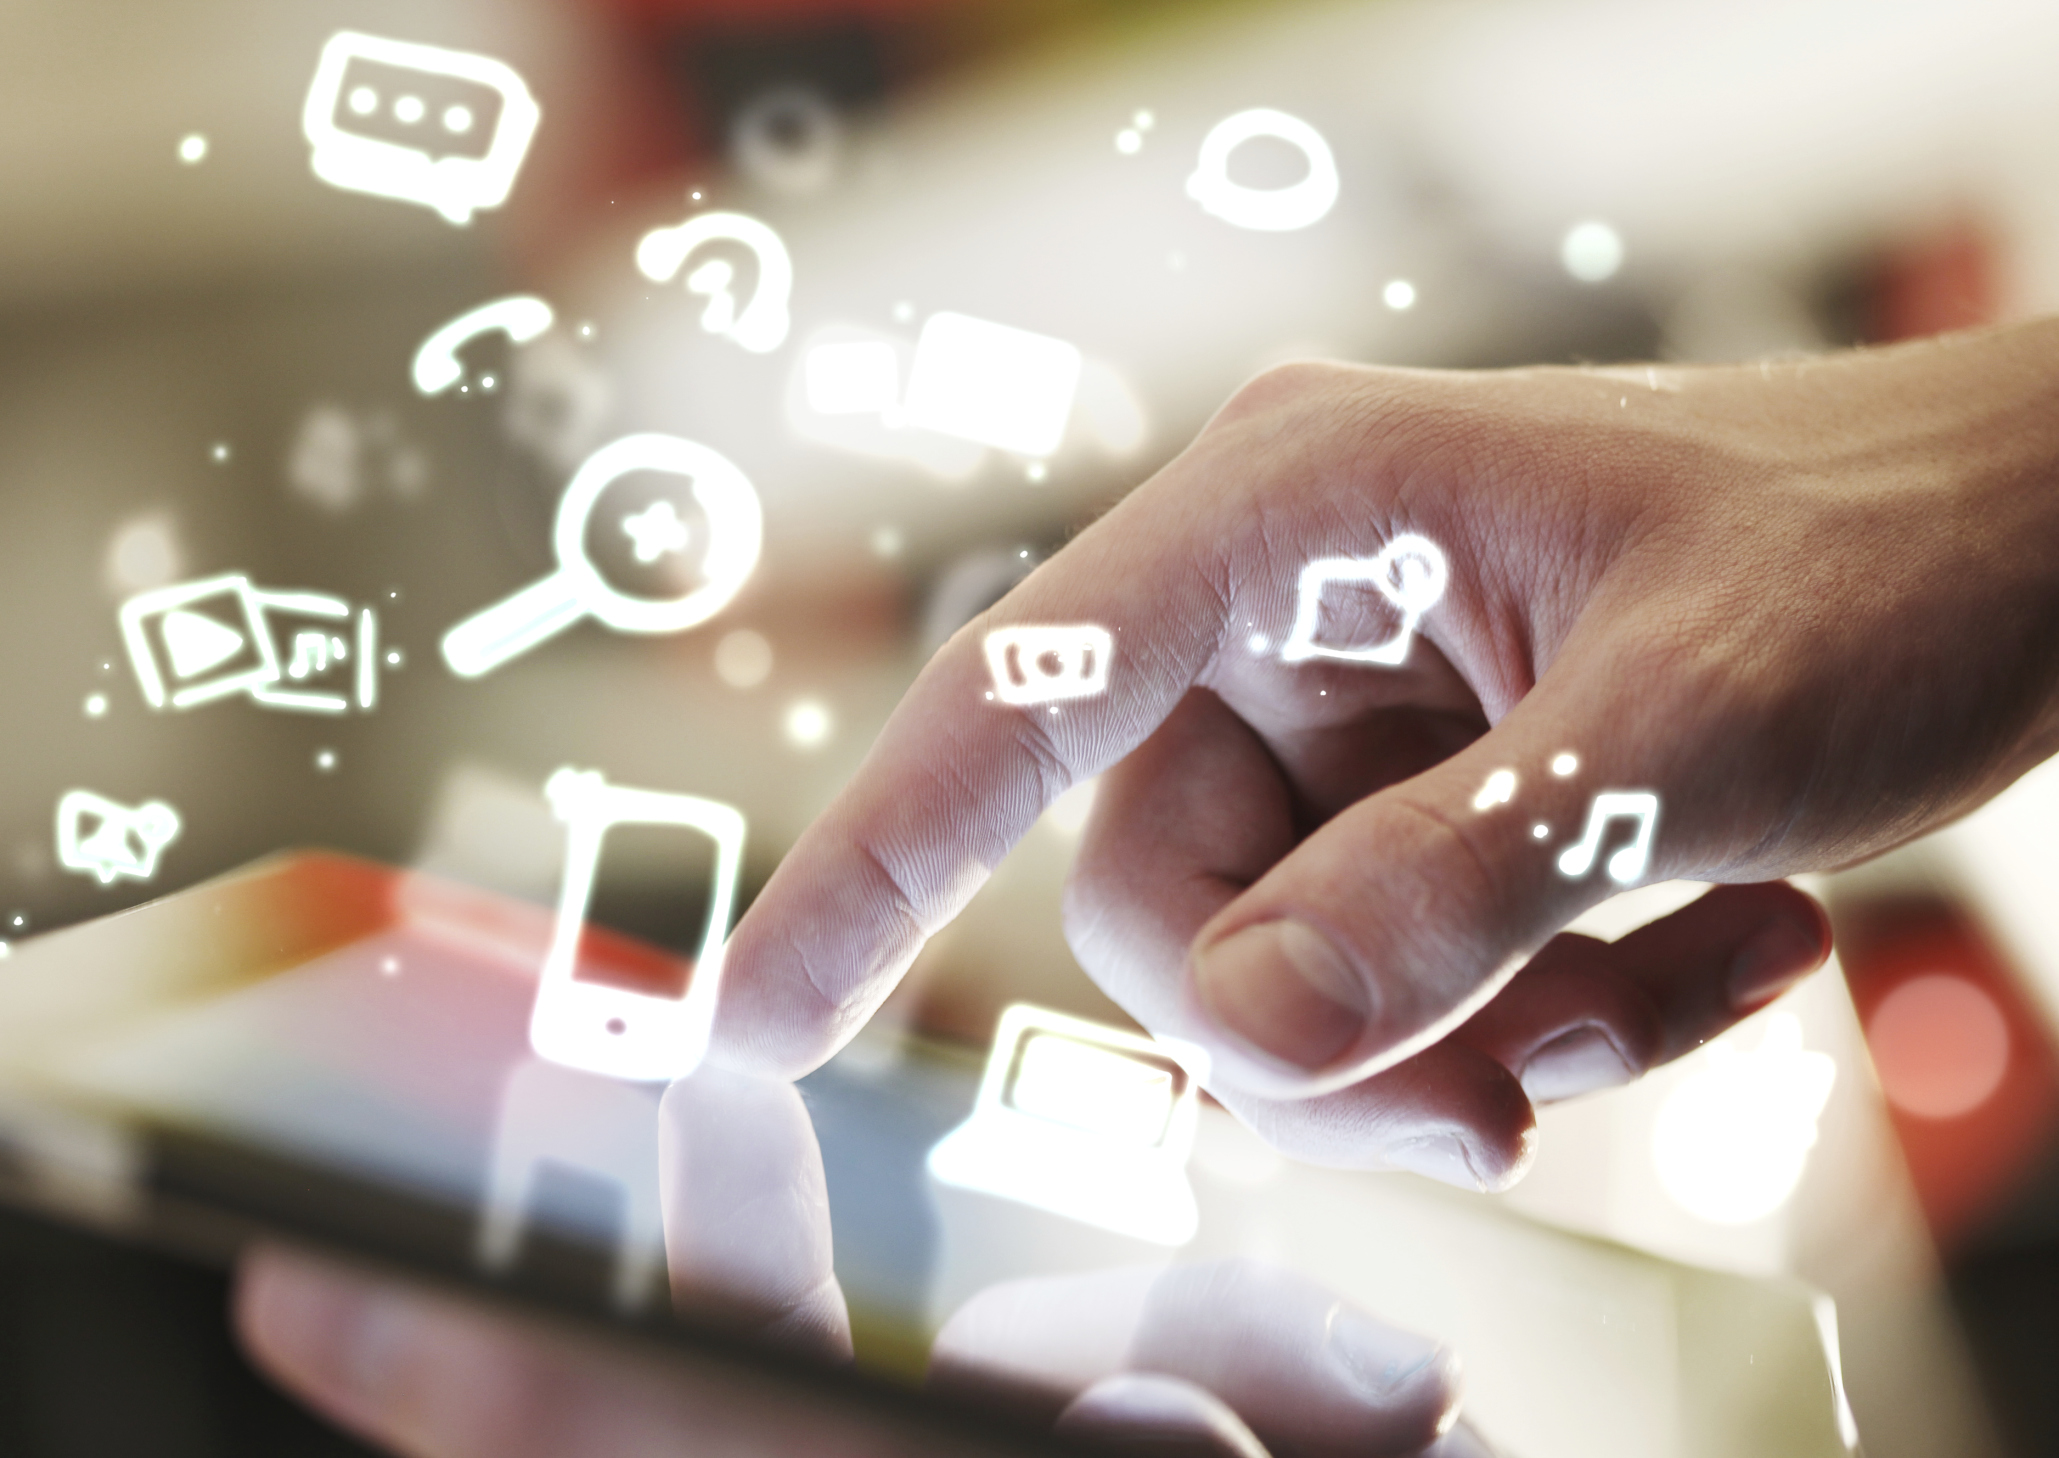 Three Digital Life Trends for 2014